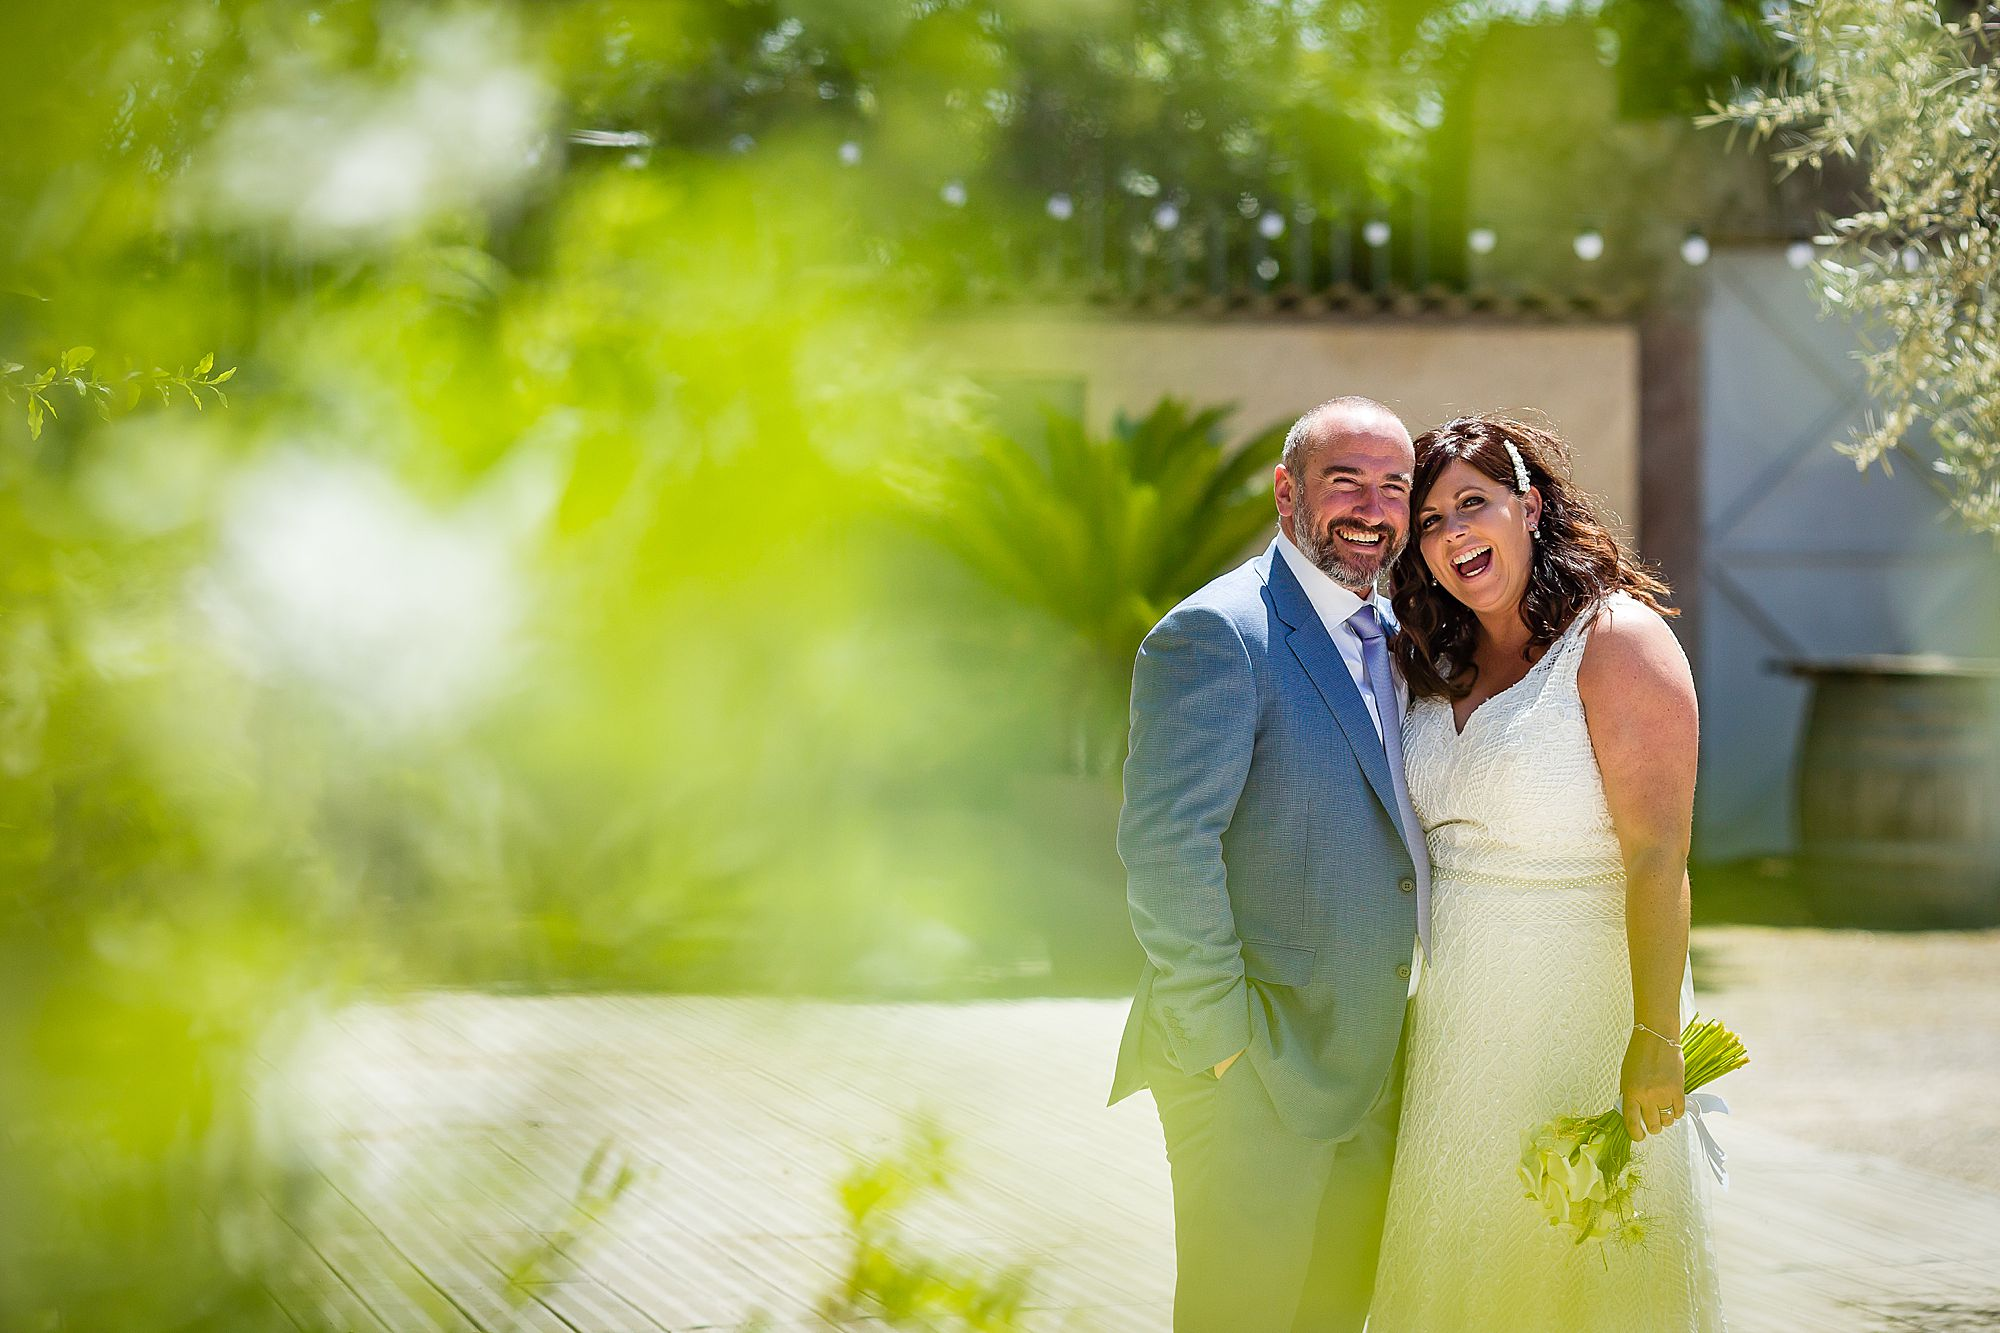 Domaine de la Grangette wedding photos